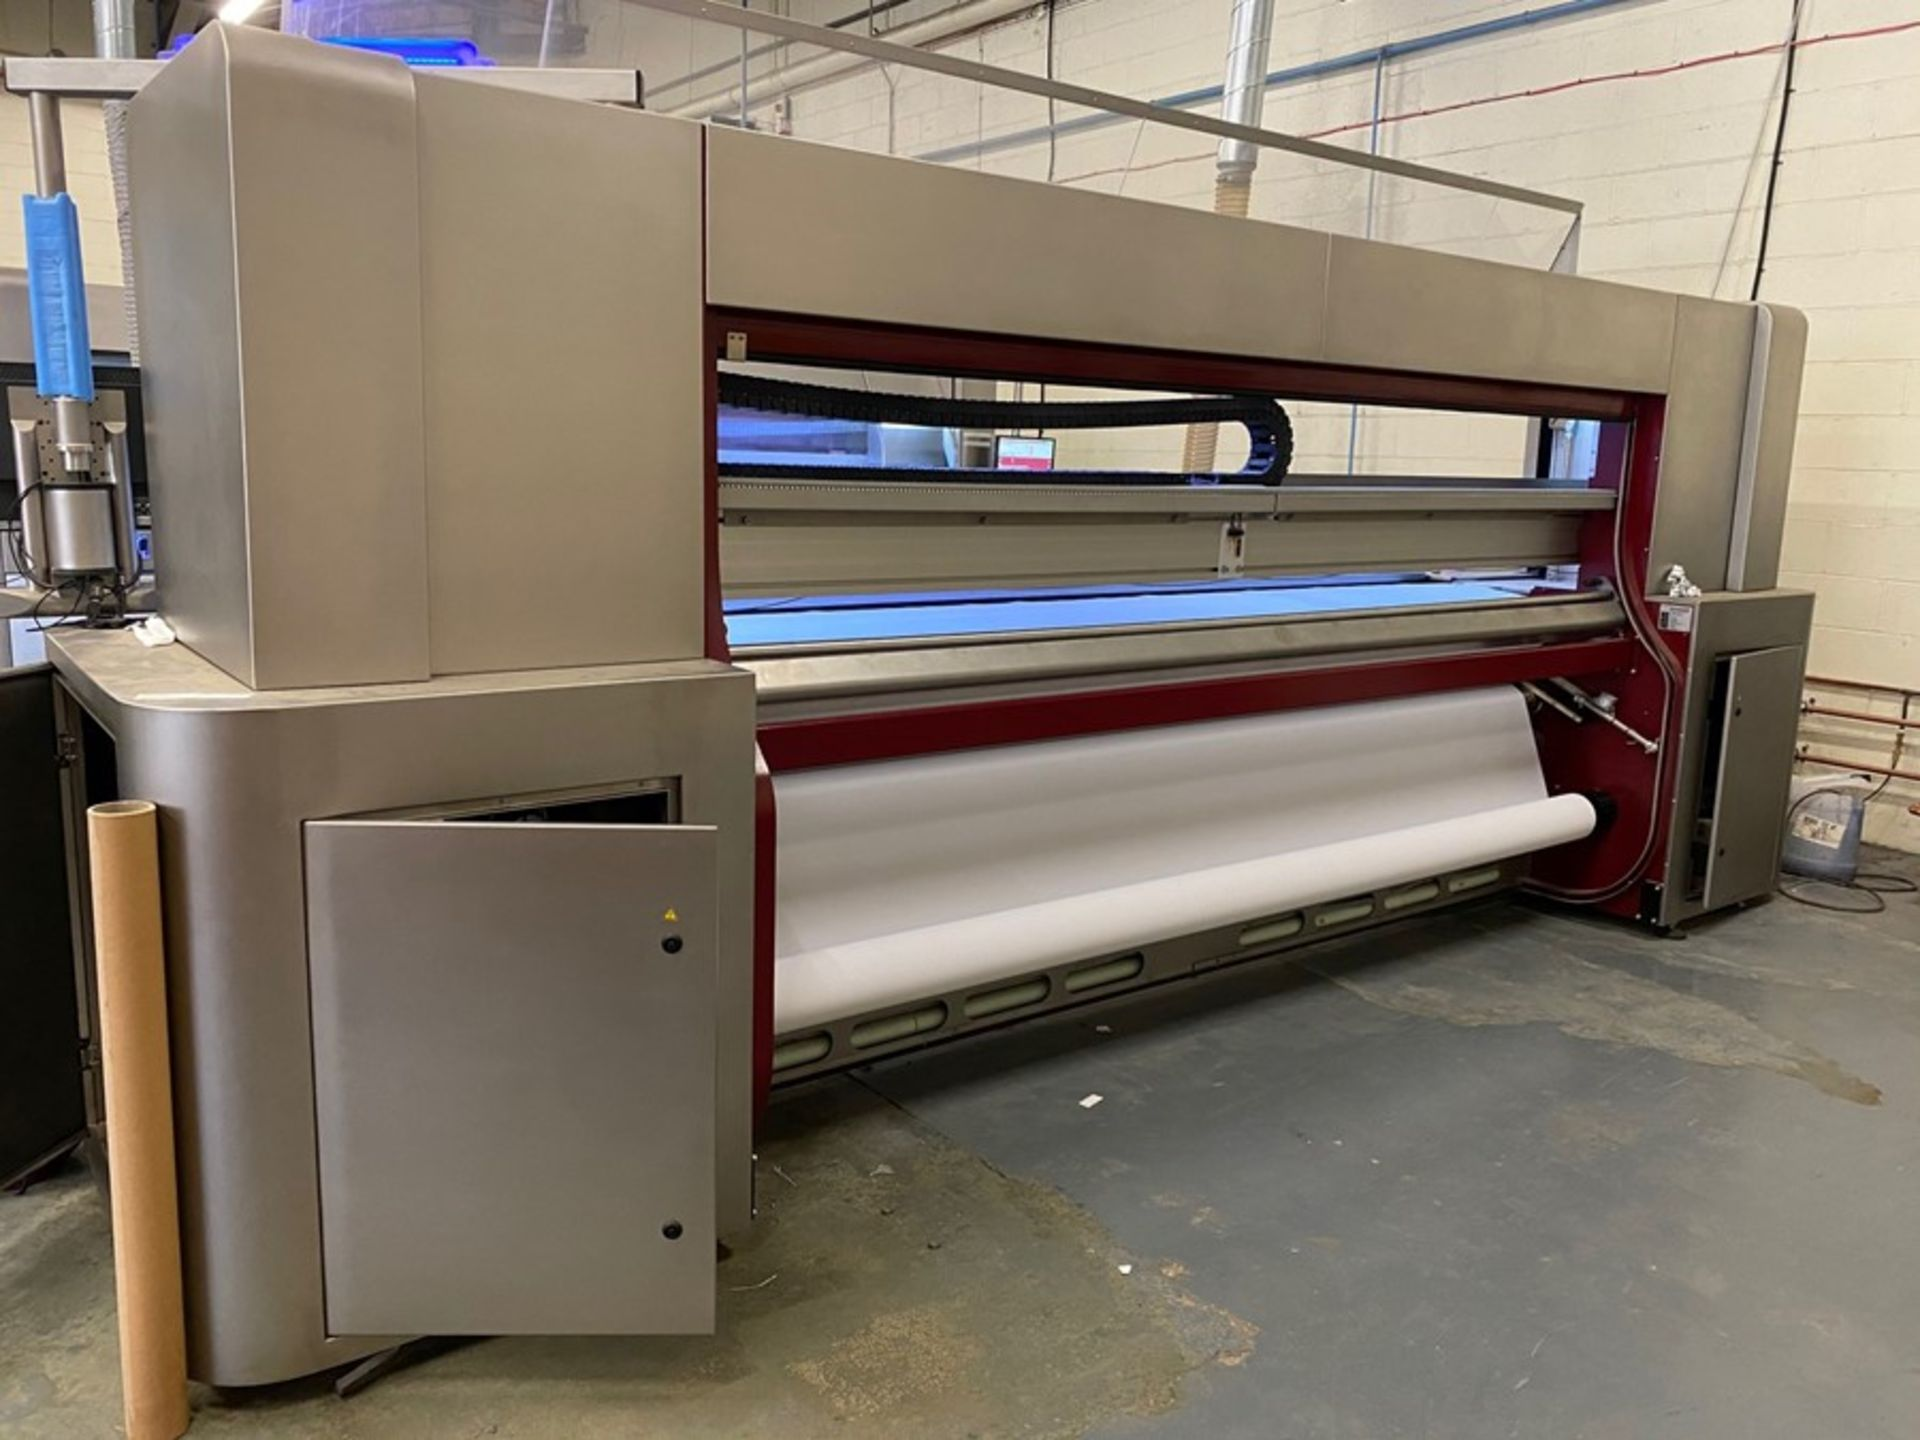 Hollanders Color Booster XL, Type B digital textile printer (2013) - Image 17 of 20